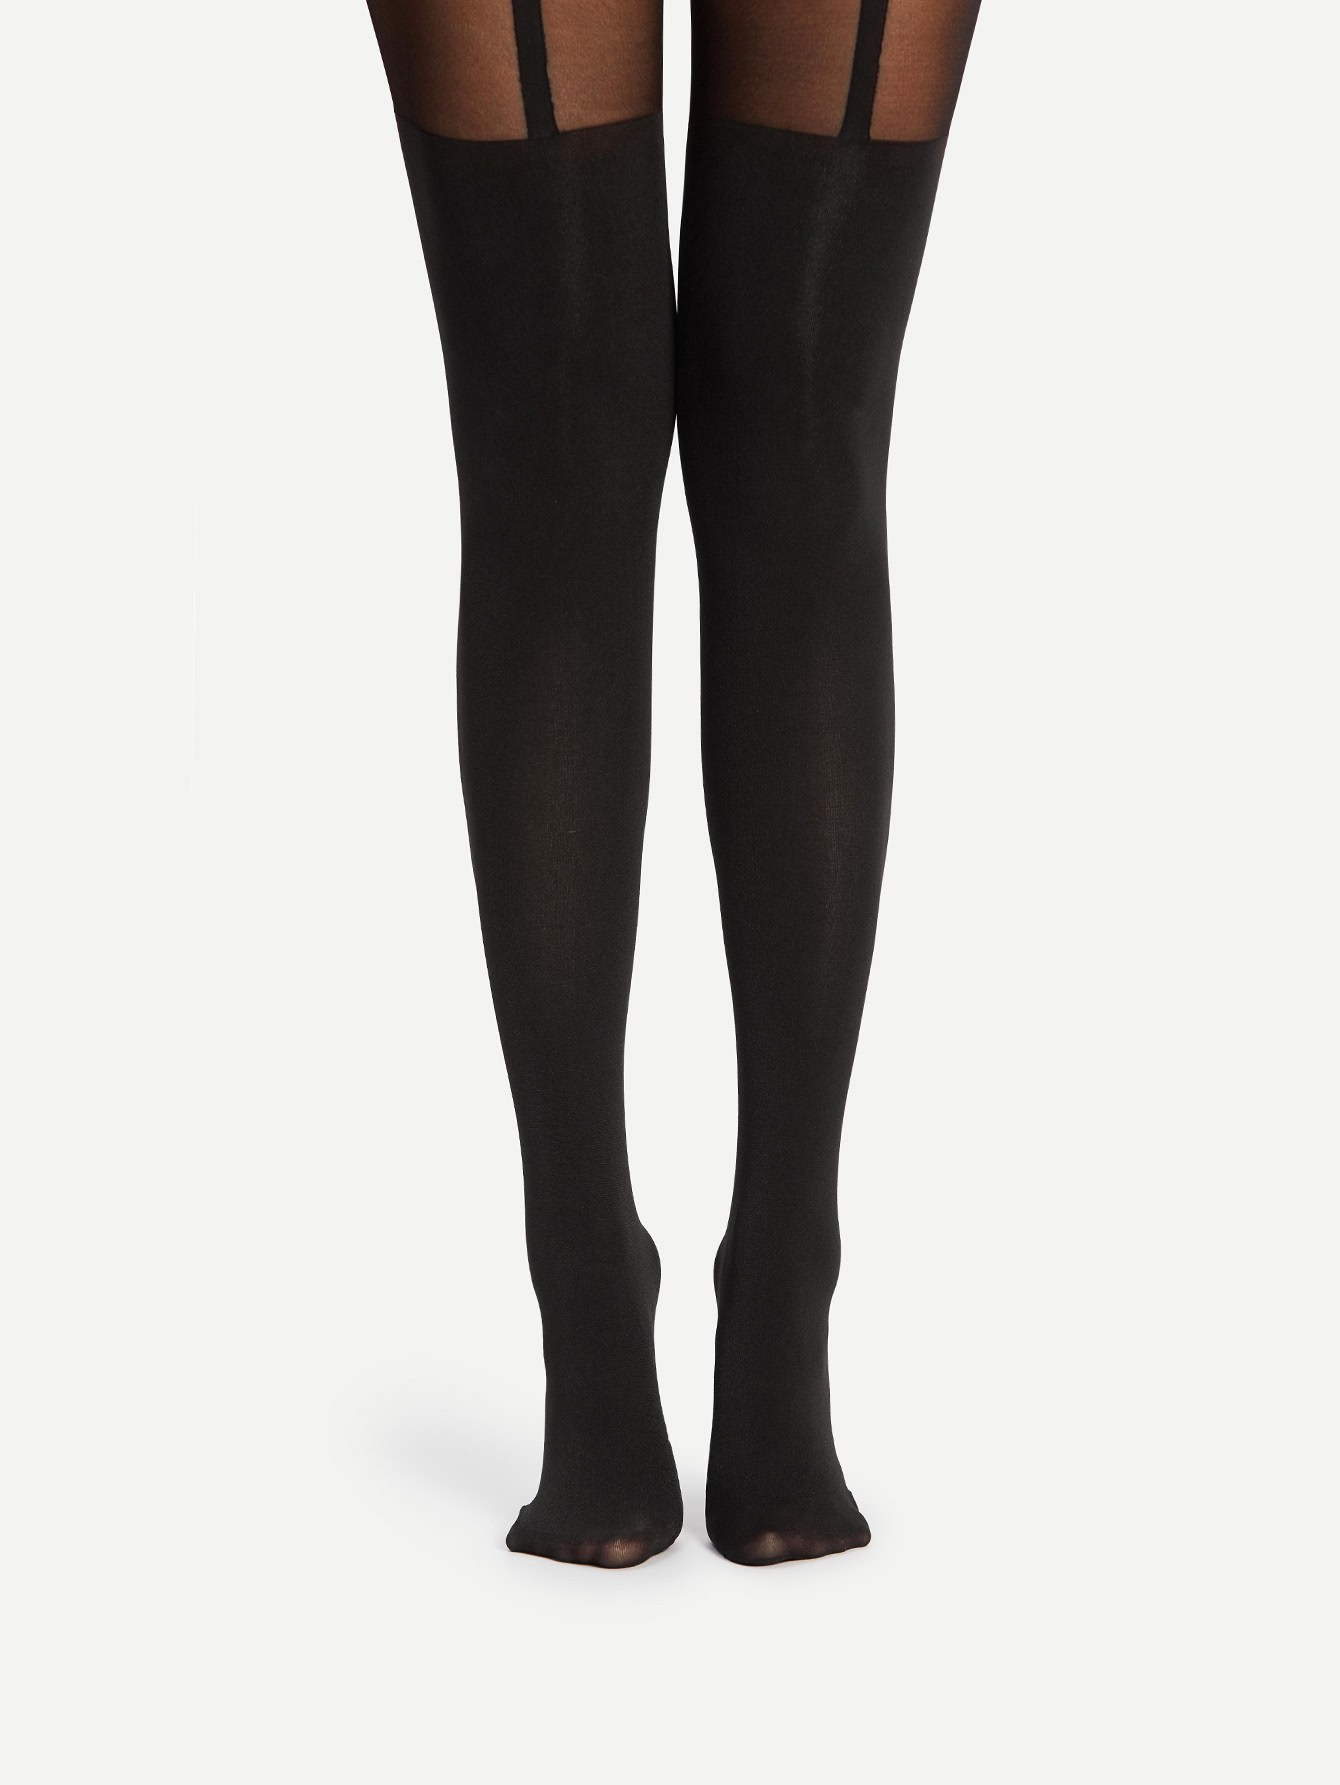 Mesh Panel Tights 20d striped mesh tights